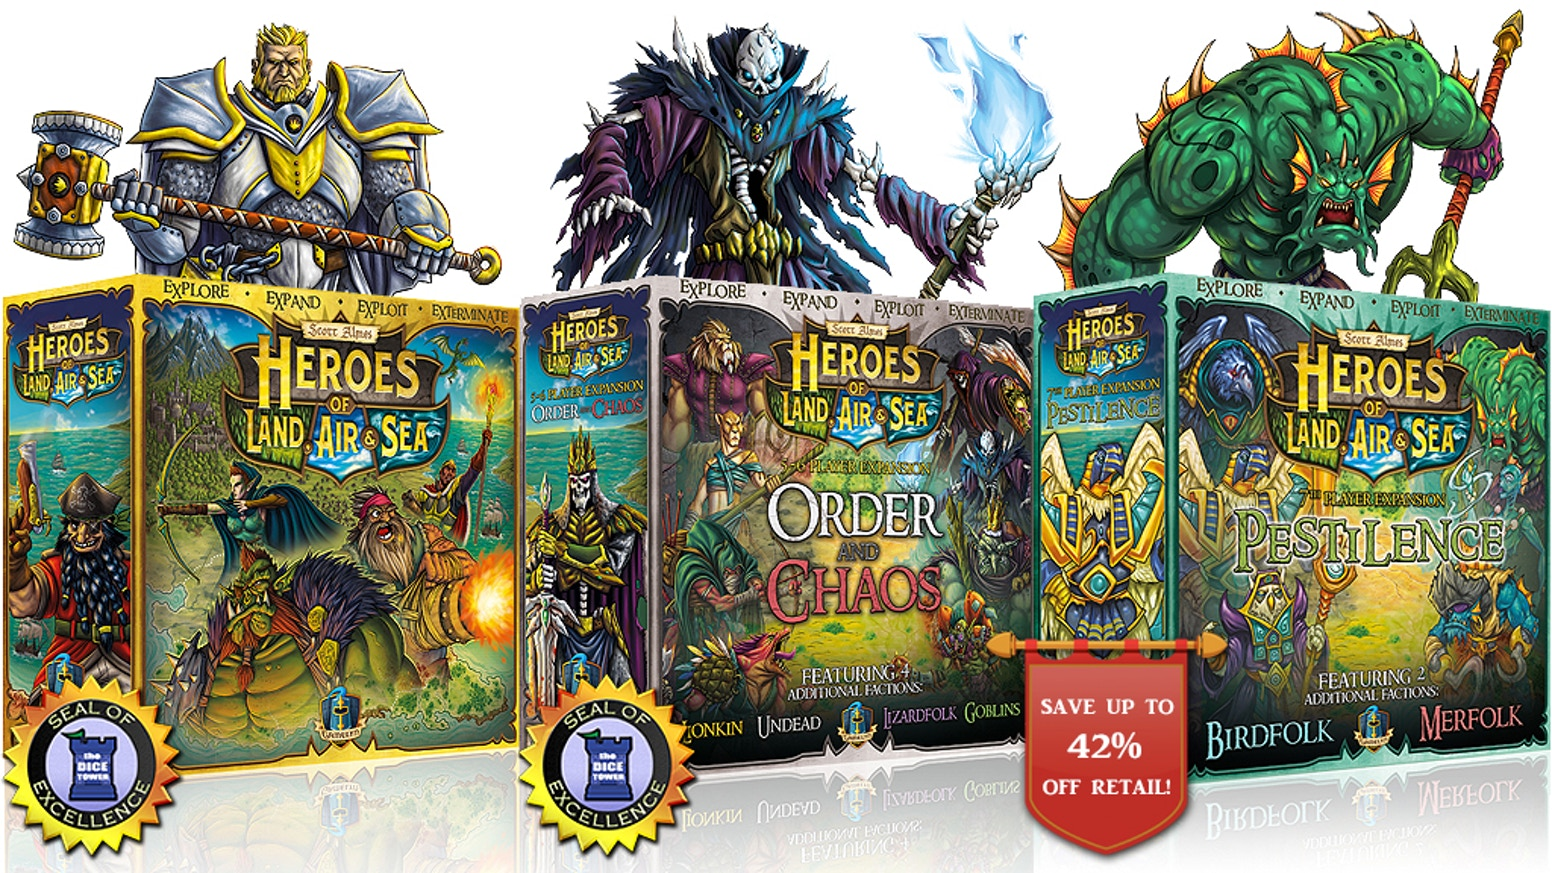 This acclaimed 4X game is back w/ a reprint and a new expansion! Now plays up to 7 players. Includes the factions Birdfolk & Merfolk!